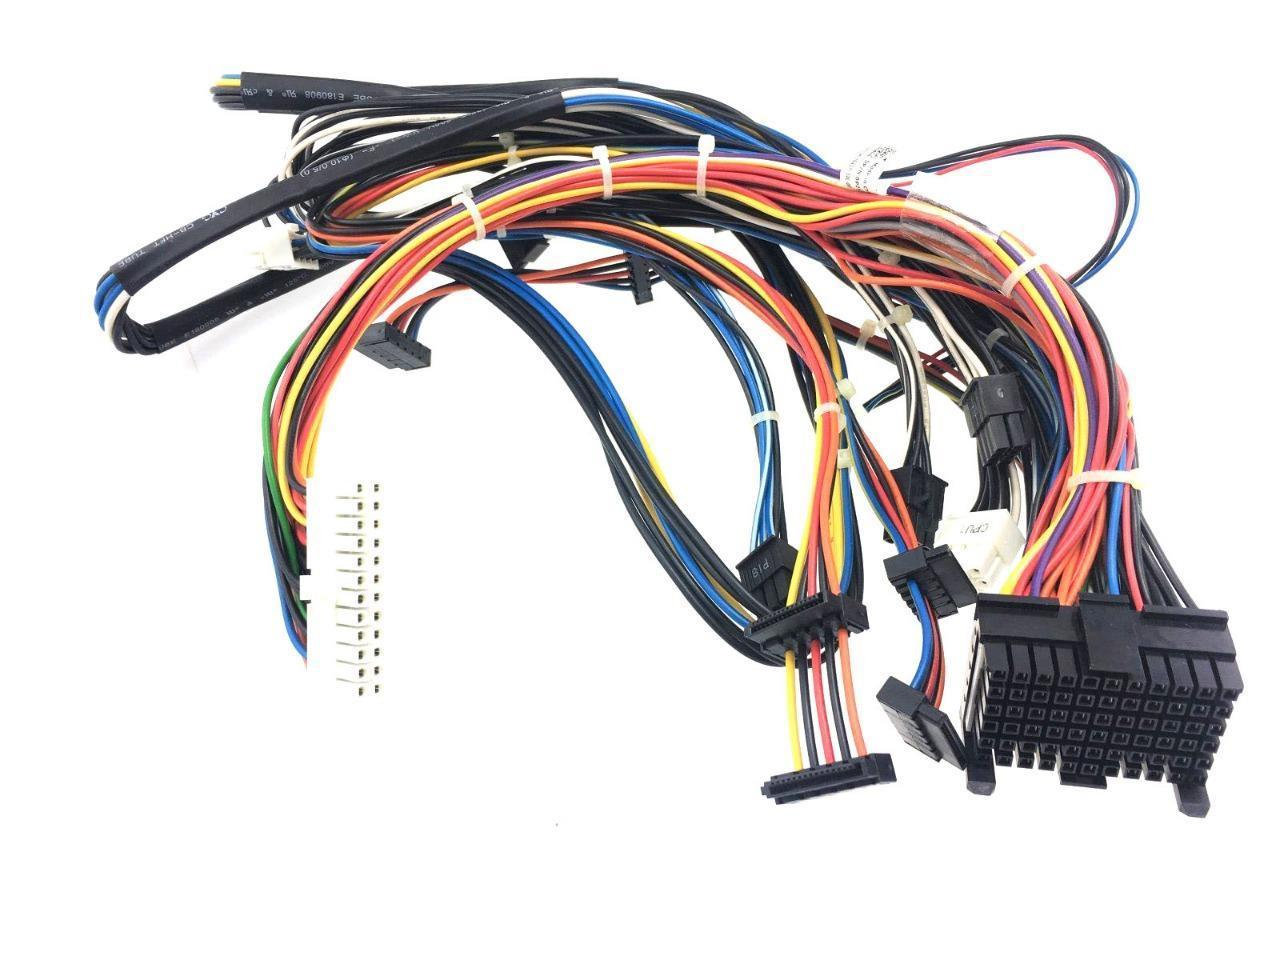 hight resolution of dell precision t7500 power supply wiring harness p211h